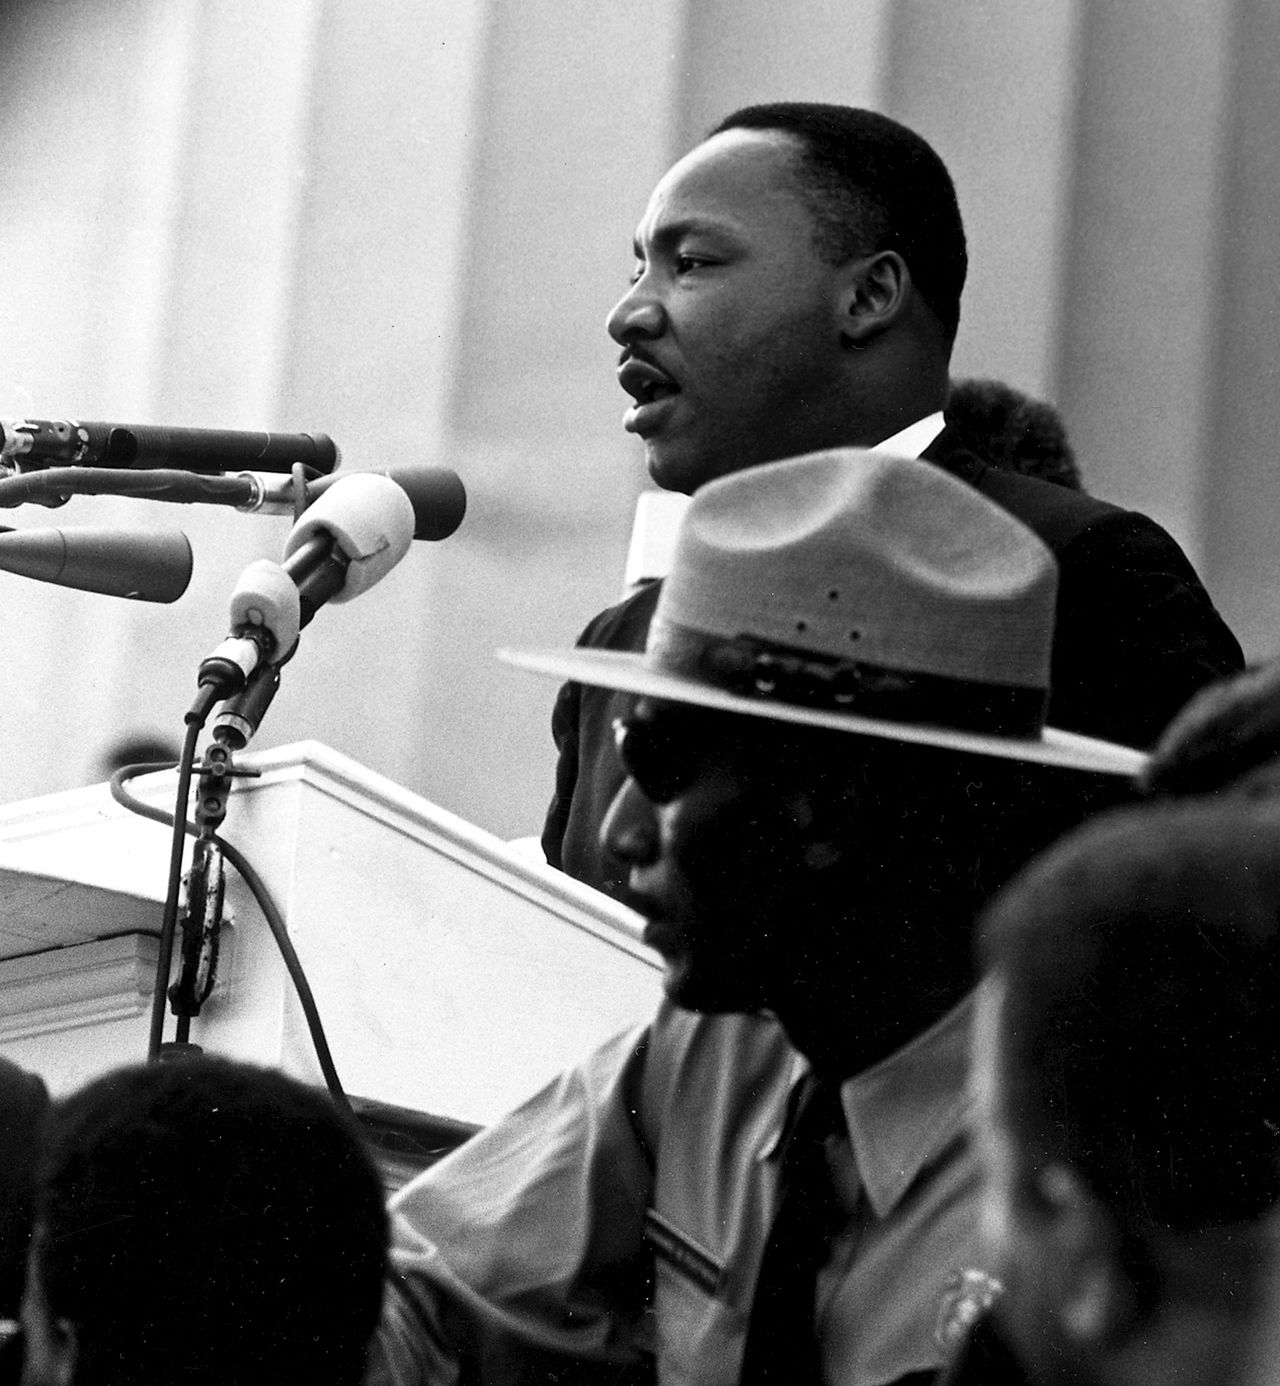 Photo: Dr. Martin Luther King, Jr. March on Washington; Source: United States Federal Government 17 U.S.C. § 105